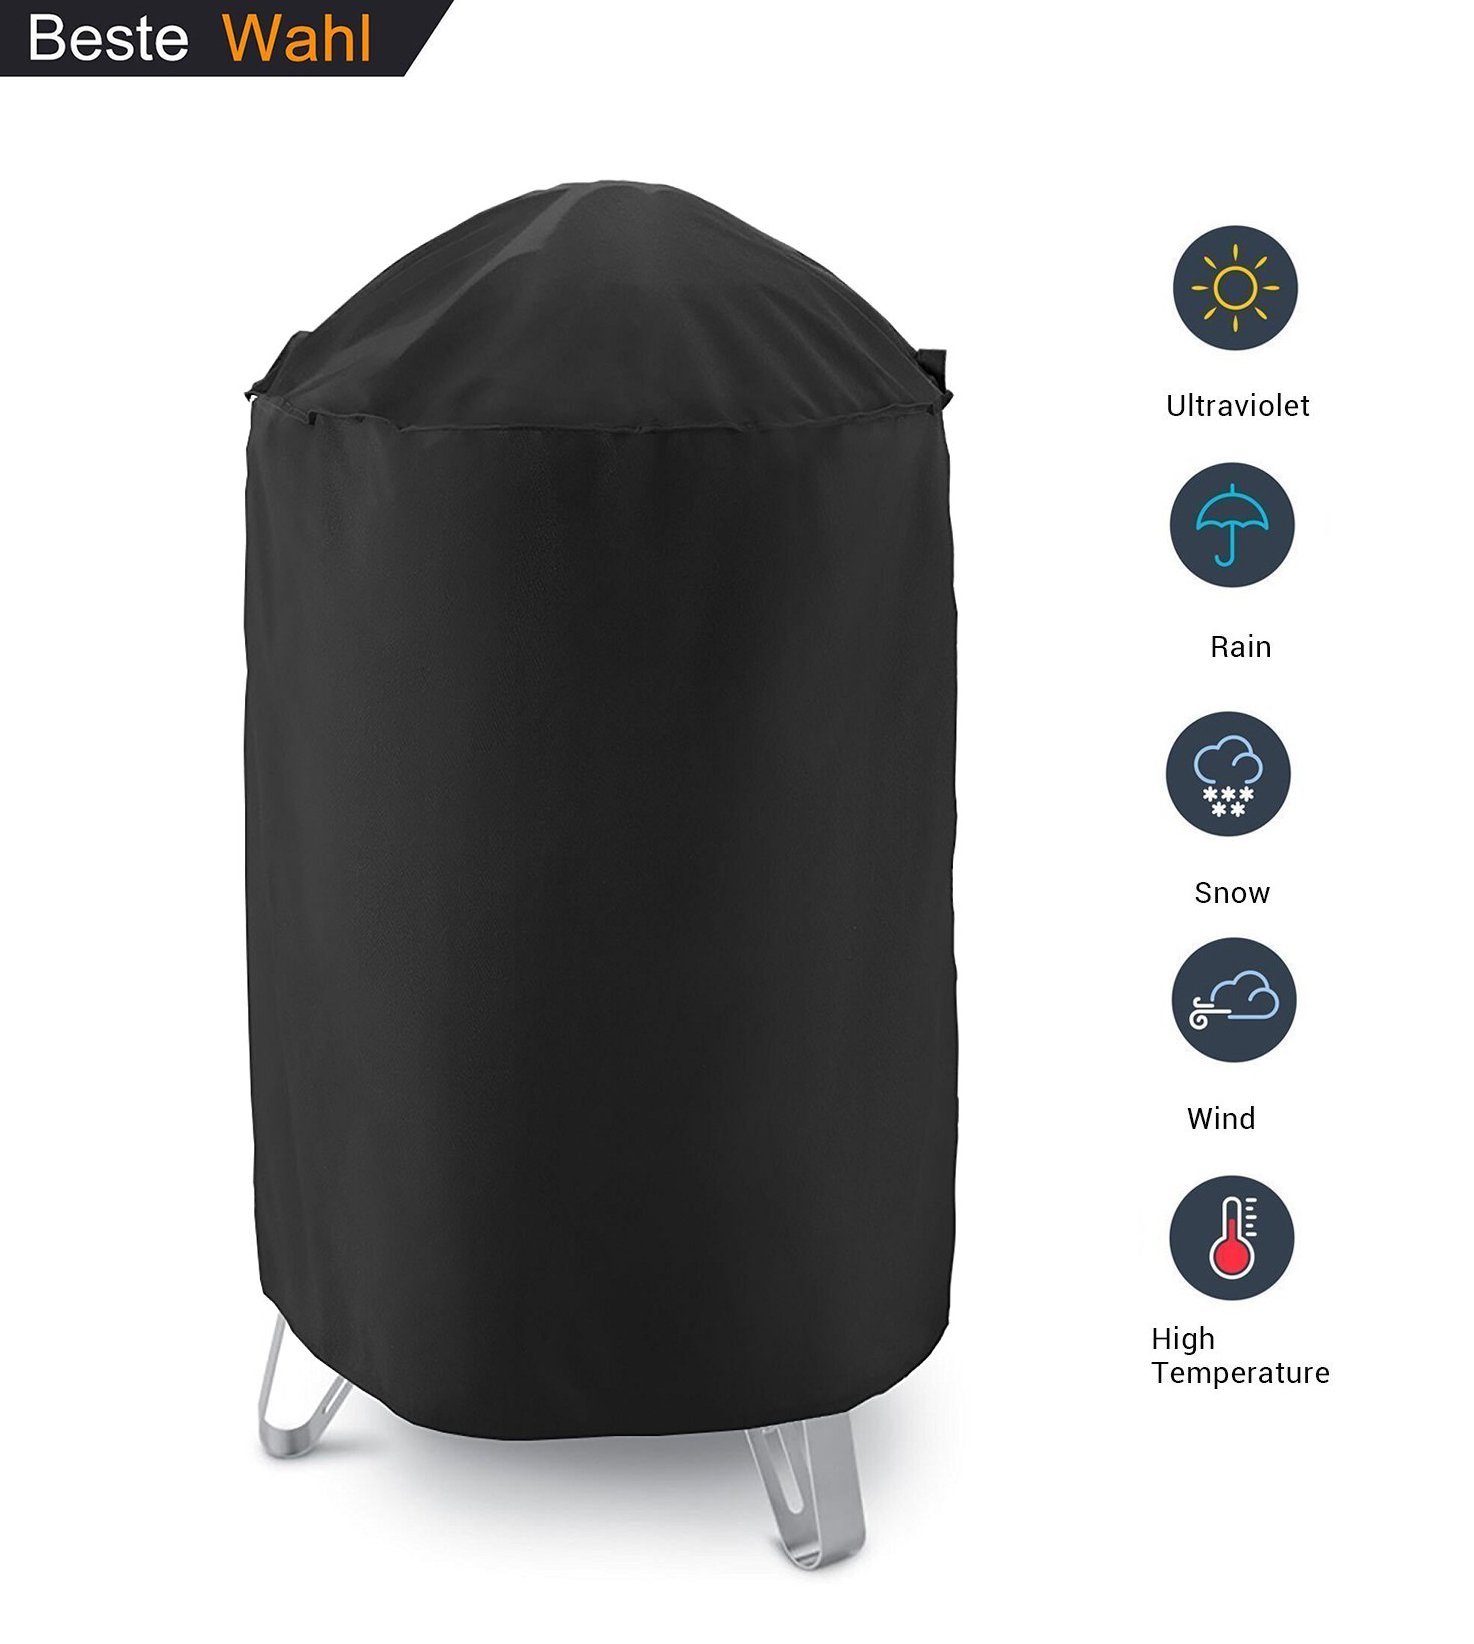 AKEfit Dome Smoker Cover, 30'' Dia x 36'' H,Heavy Duty Waterproof Barrel Cover, Vertical Water Smoker Cover, Round Kettle Grill Covers, All Weather Protection for Weber, Char-Broil and More